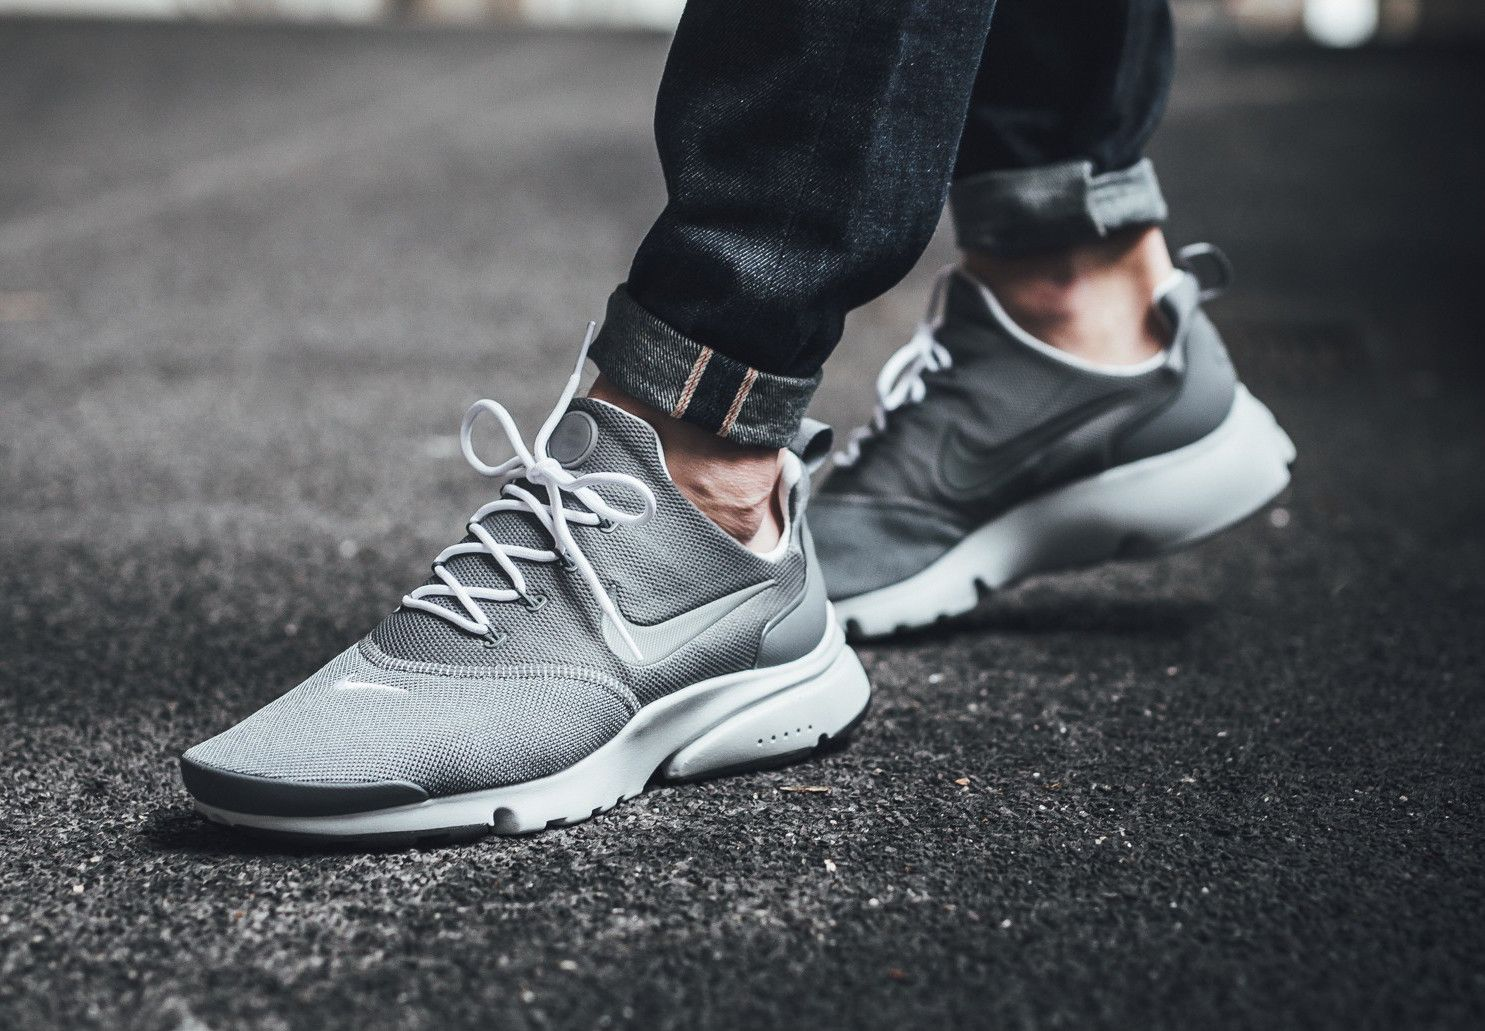 ee6396501d Classic Cool Grey Lands On The Nike Air Presto Fly | ❌SneakerS oF ...